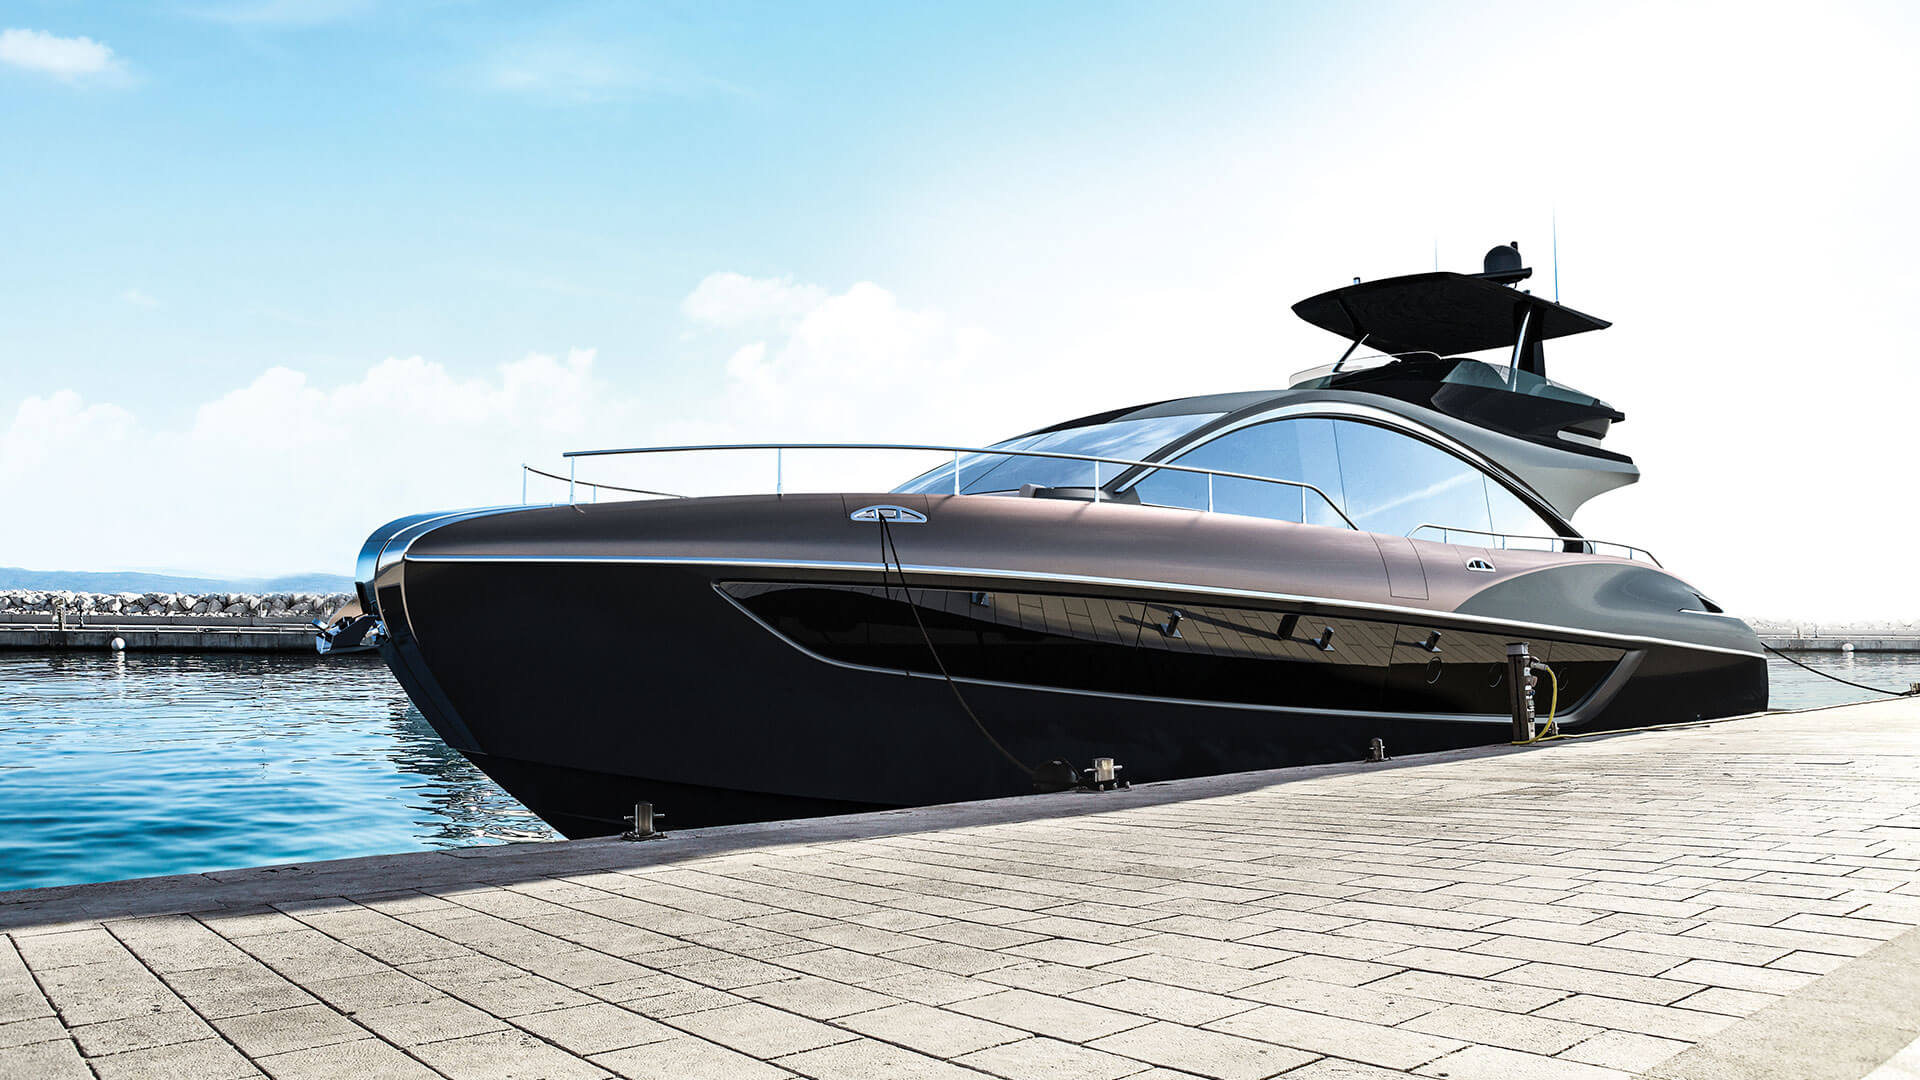 2019 lexus ly 650 luxury yacht landscape